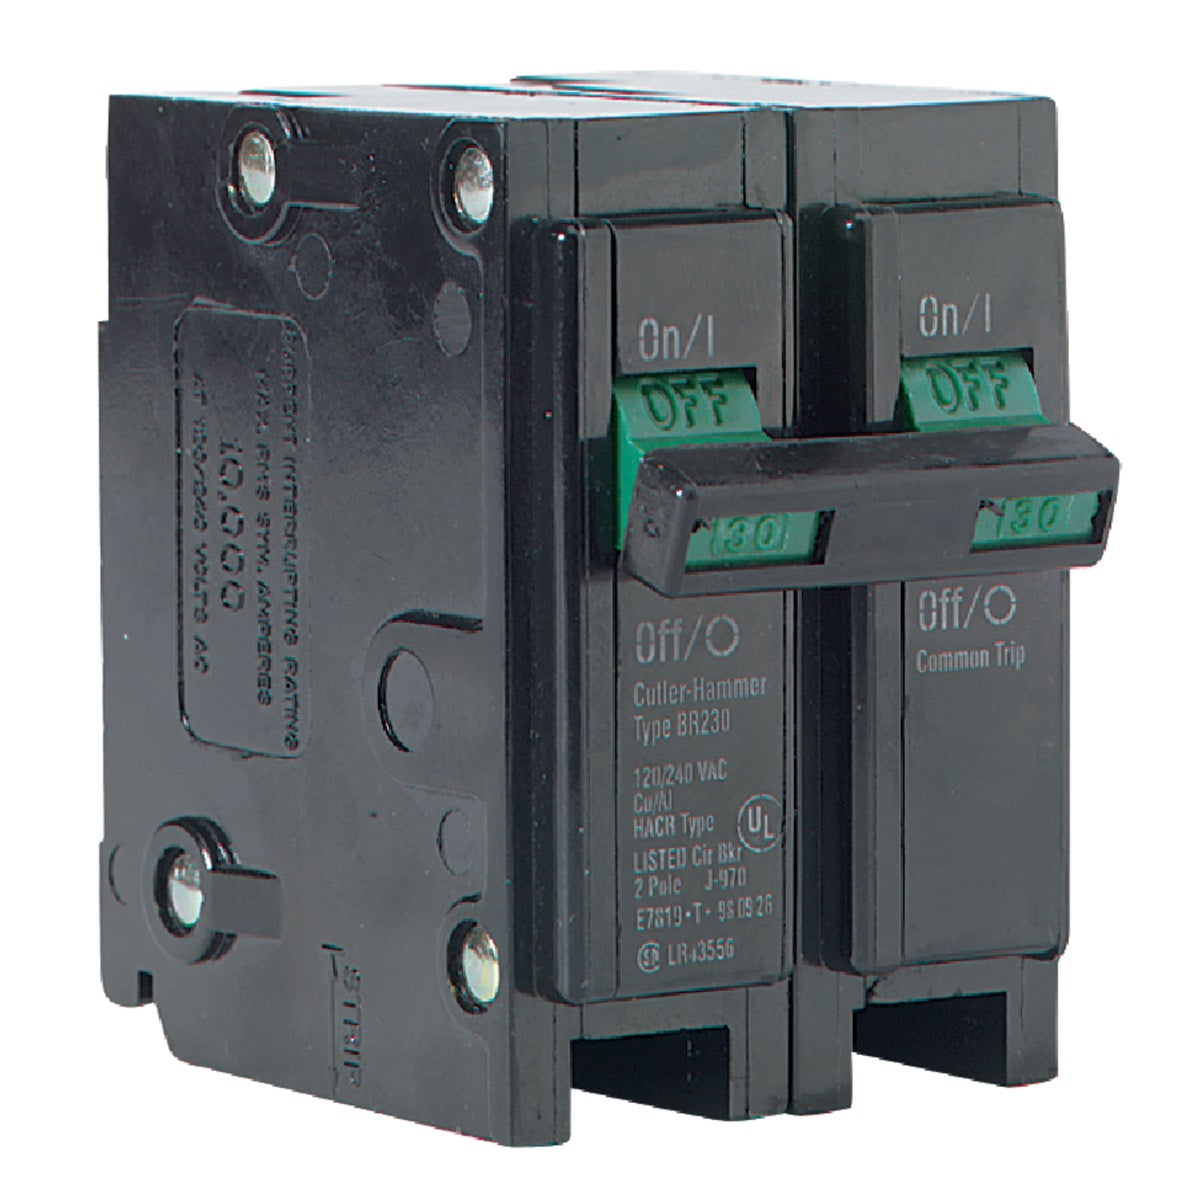 30A 2P CIRCUIT BREAKER - BR230 by Eaton Corporation